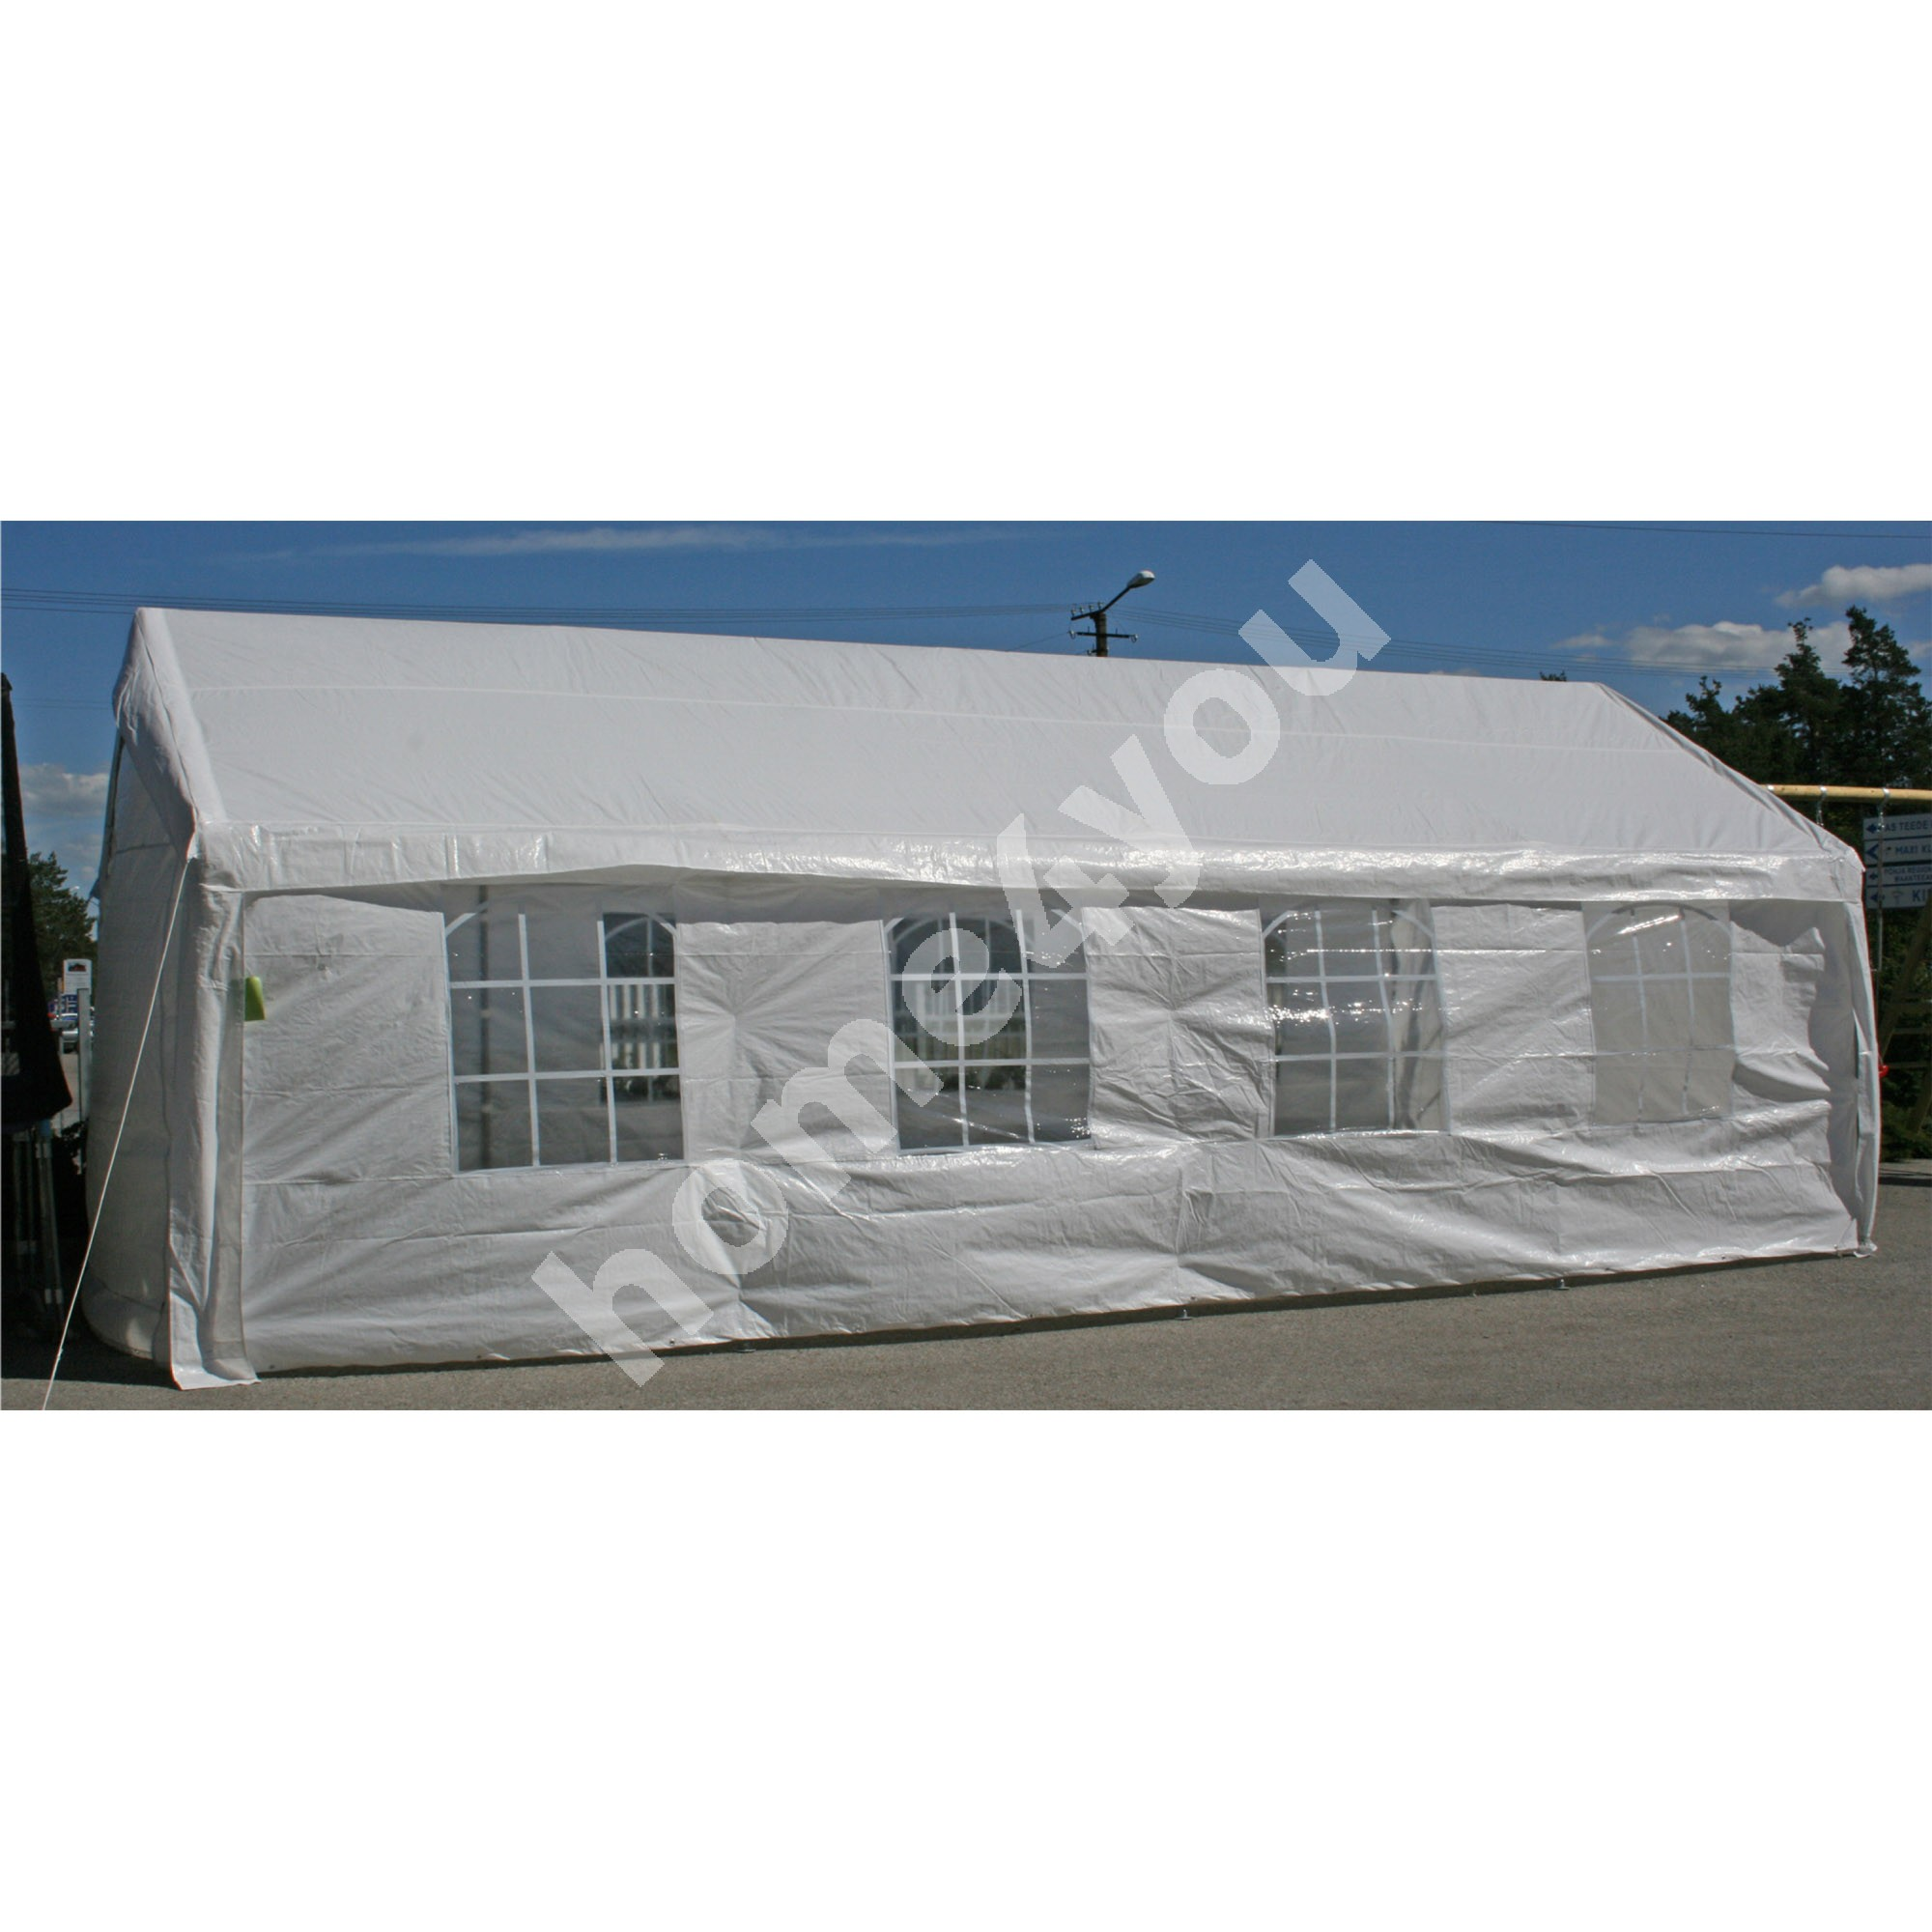 Party tent 4x8m, steel frame, cover: polyethylene, color: white